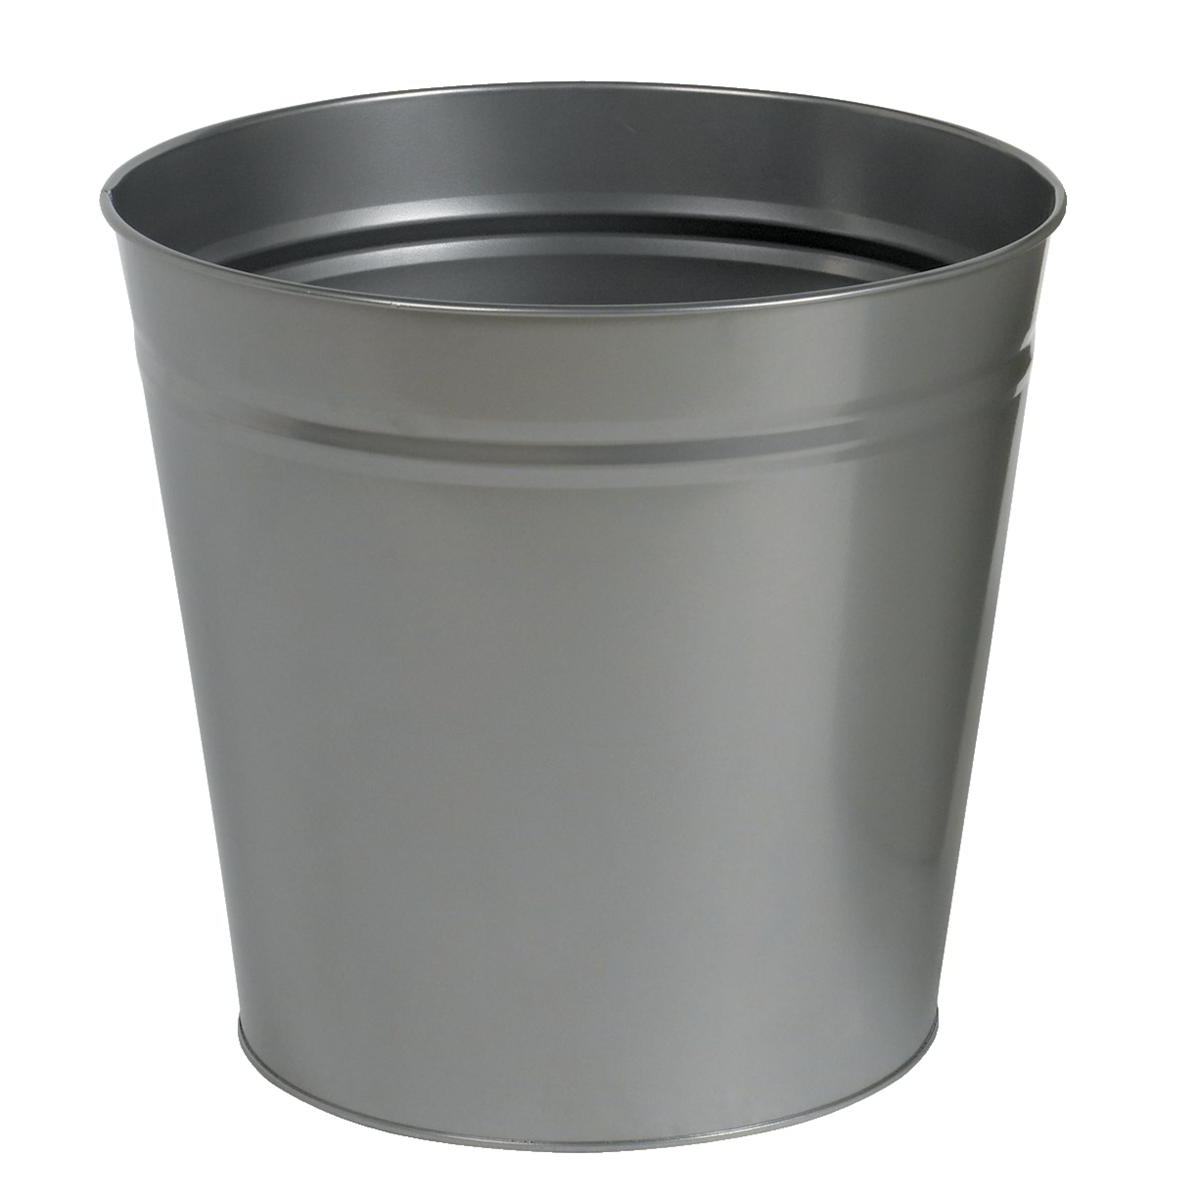 5 Star Facilities Waste Bin Round Metal Scratch Resistant D300xH280mm 15 Litres Grey